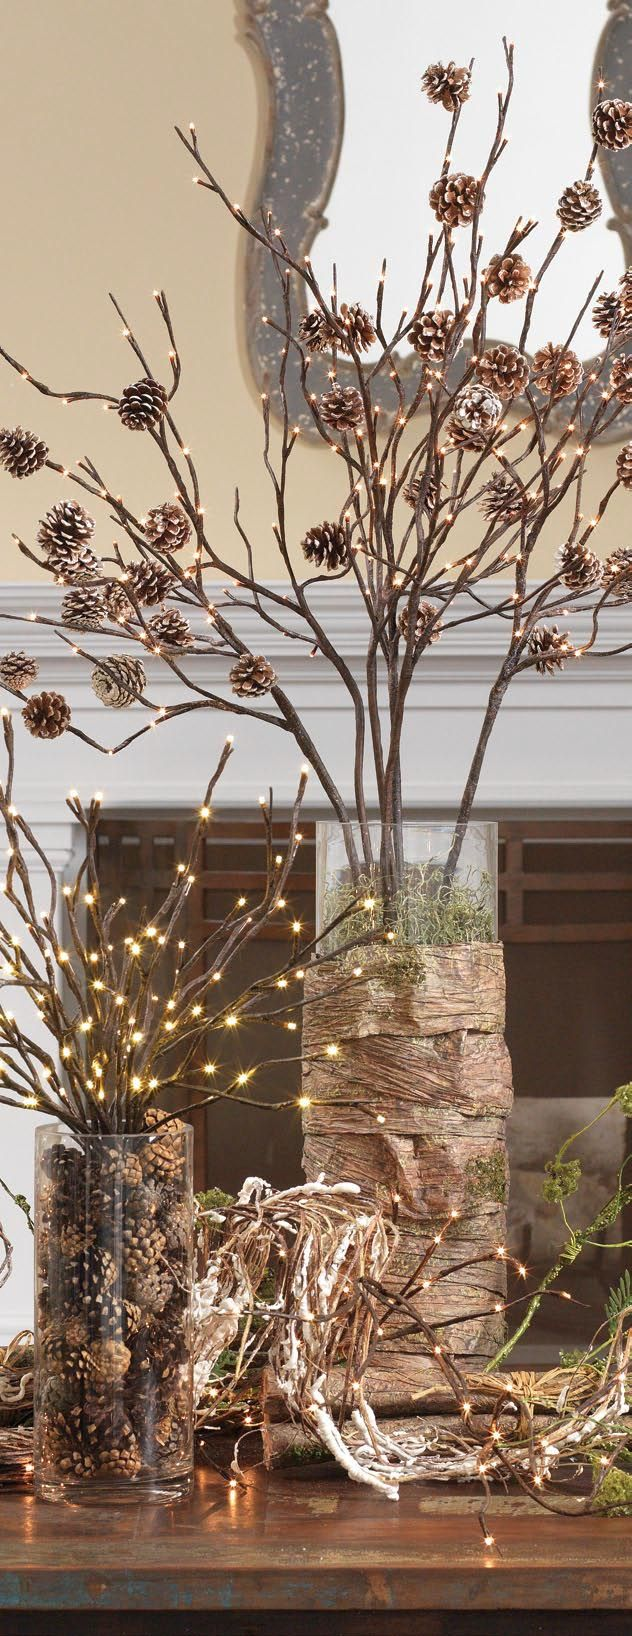 #Pine #cones, #branches and #lights - #pigne #decorate #rami #oro #luci #gold #golden #nature  #diy #faidate #craft #easy #recycle #xmas #christmas #natale #holidays #feste #noel #Weihnachten #decorating #ornaments #merry #home #house #casa #navidad #ideas